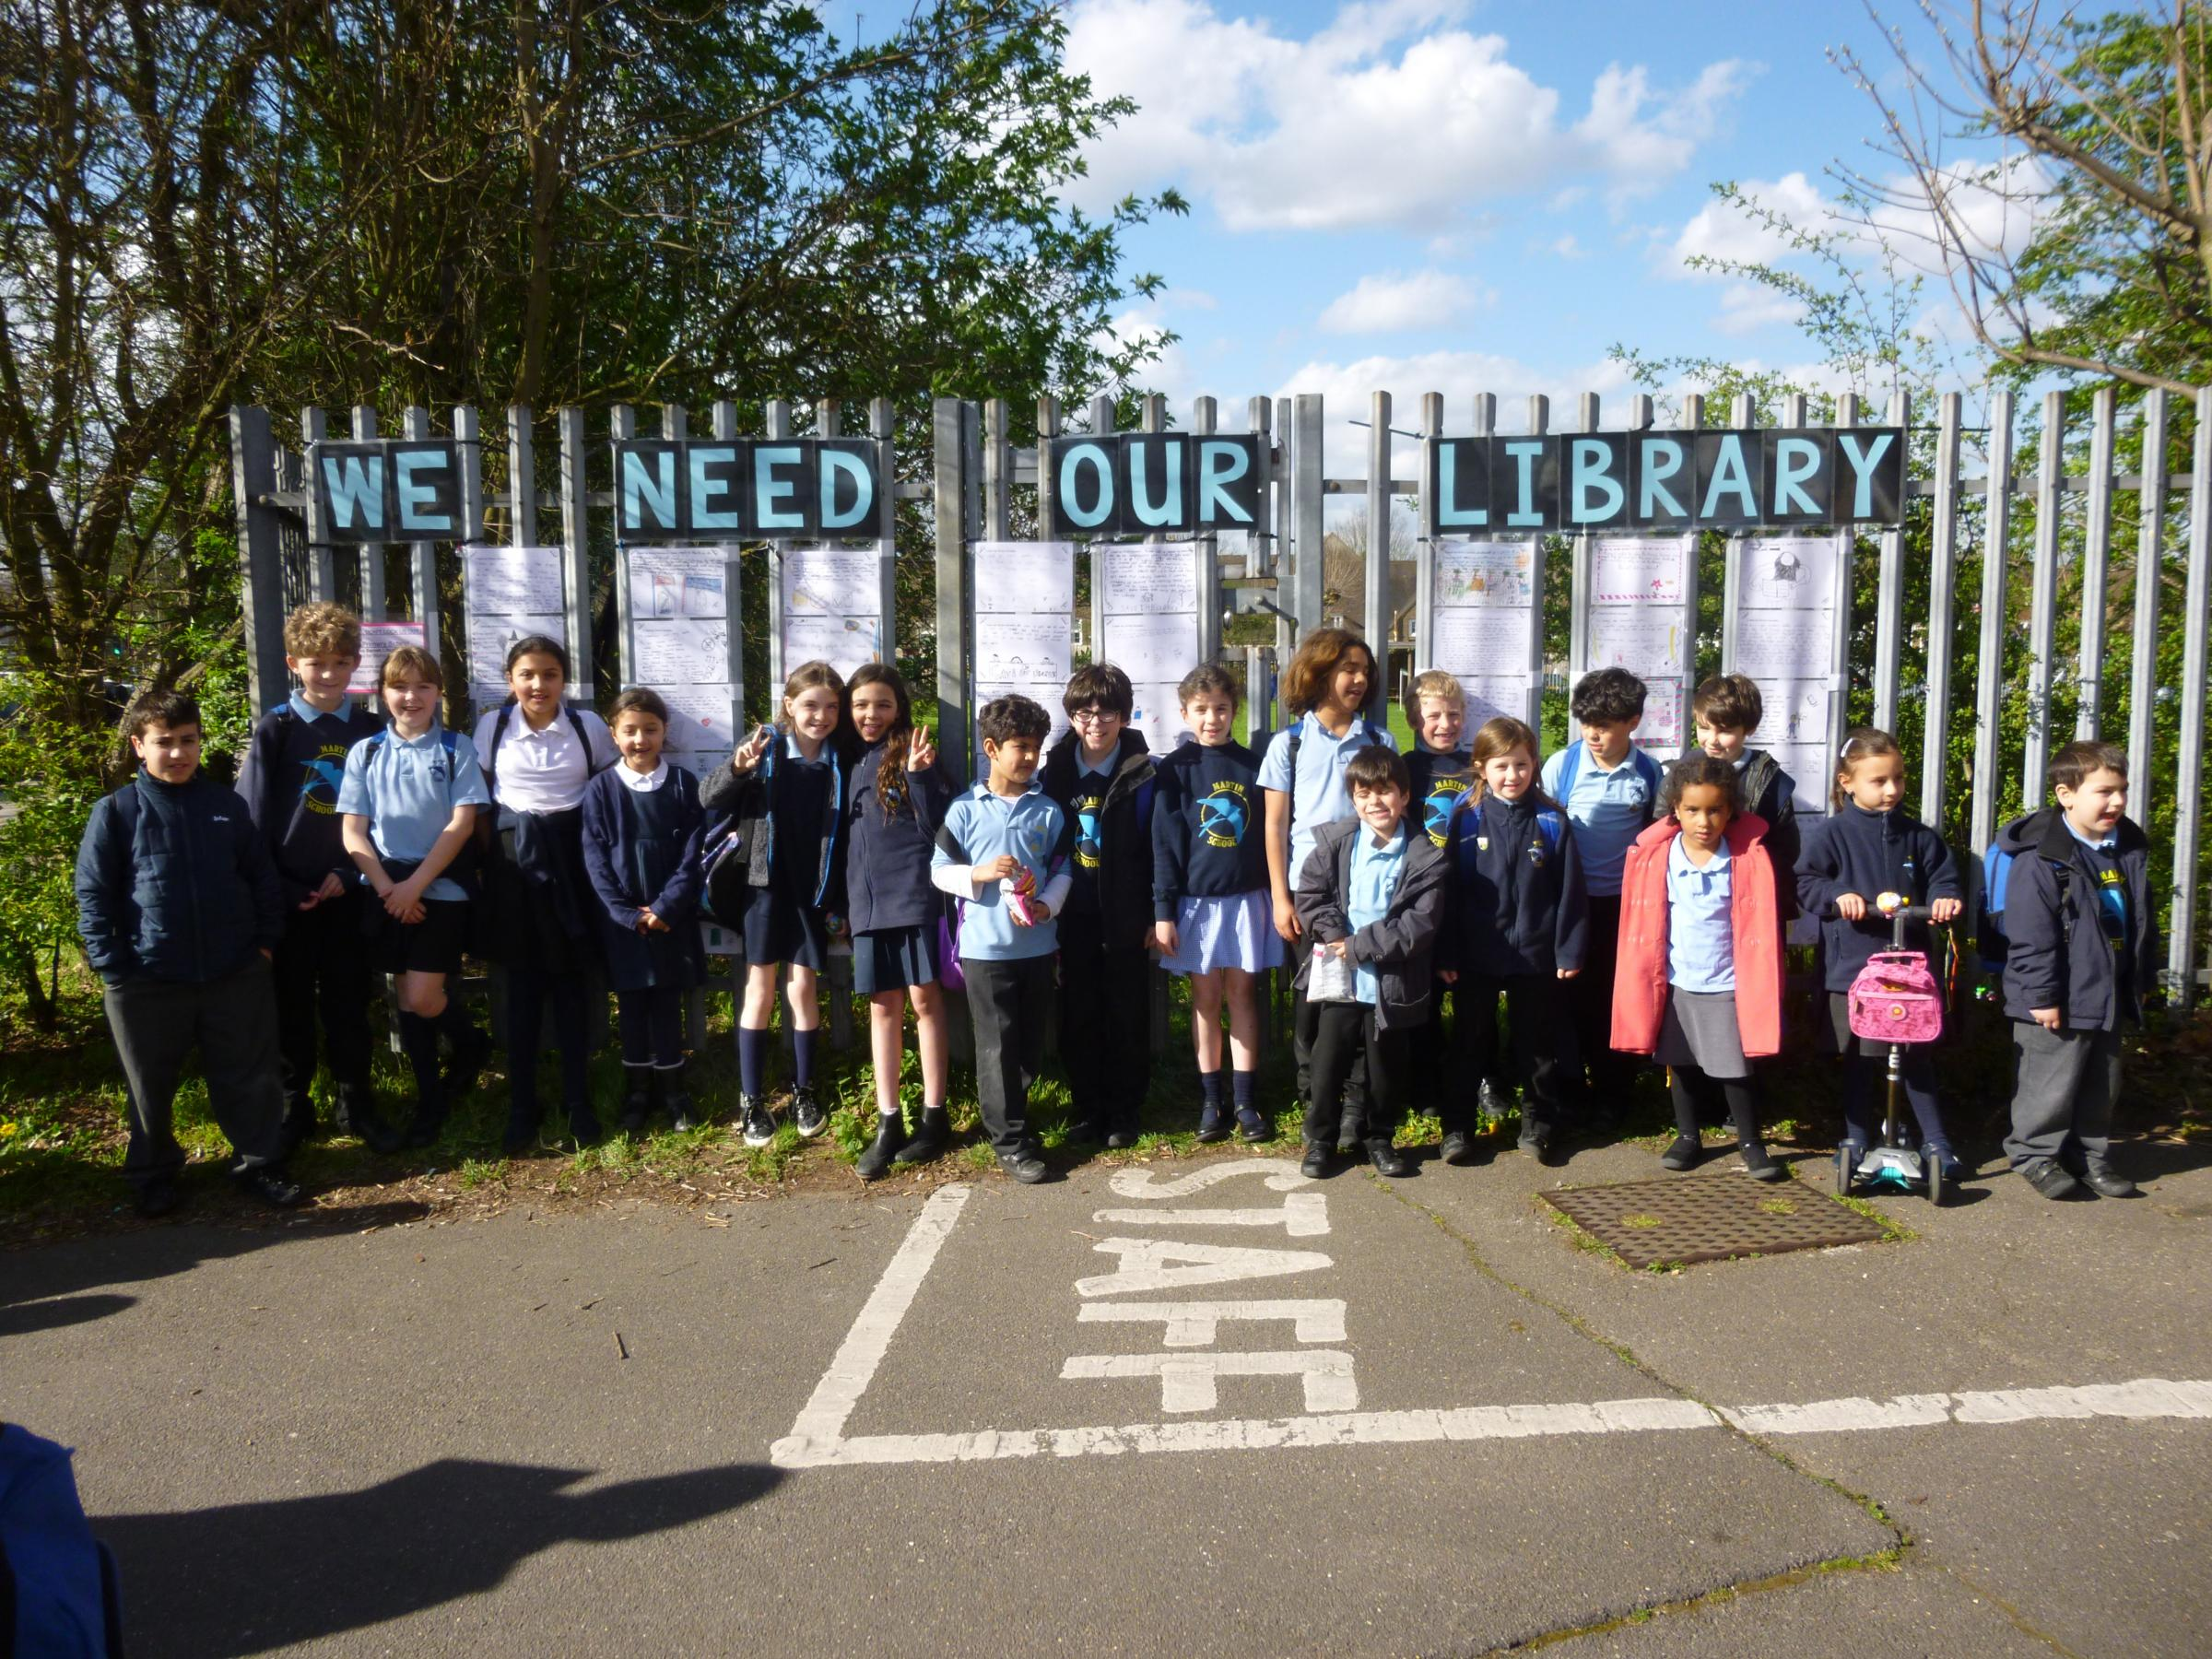 Children campaigning against library cuts